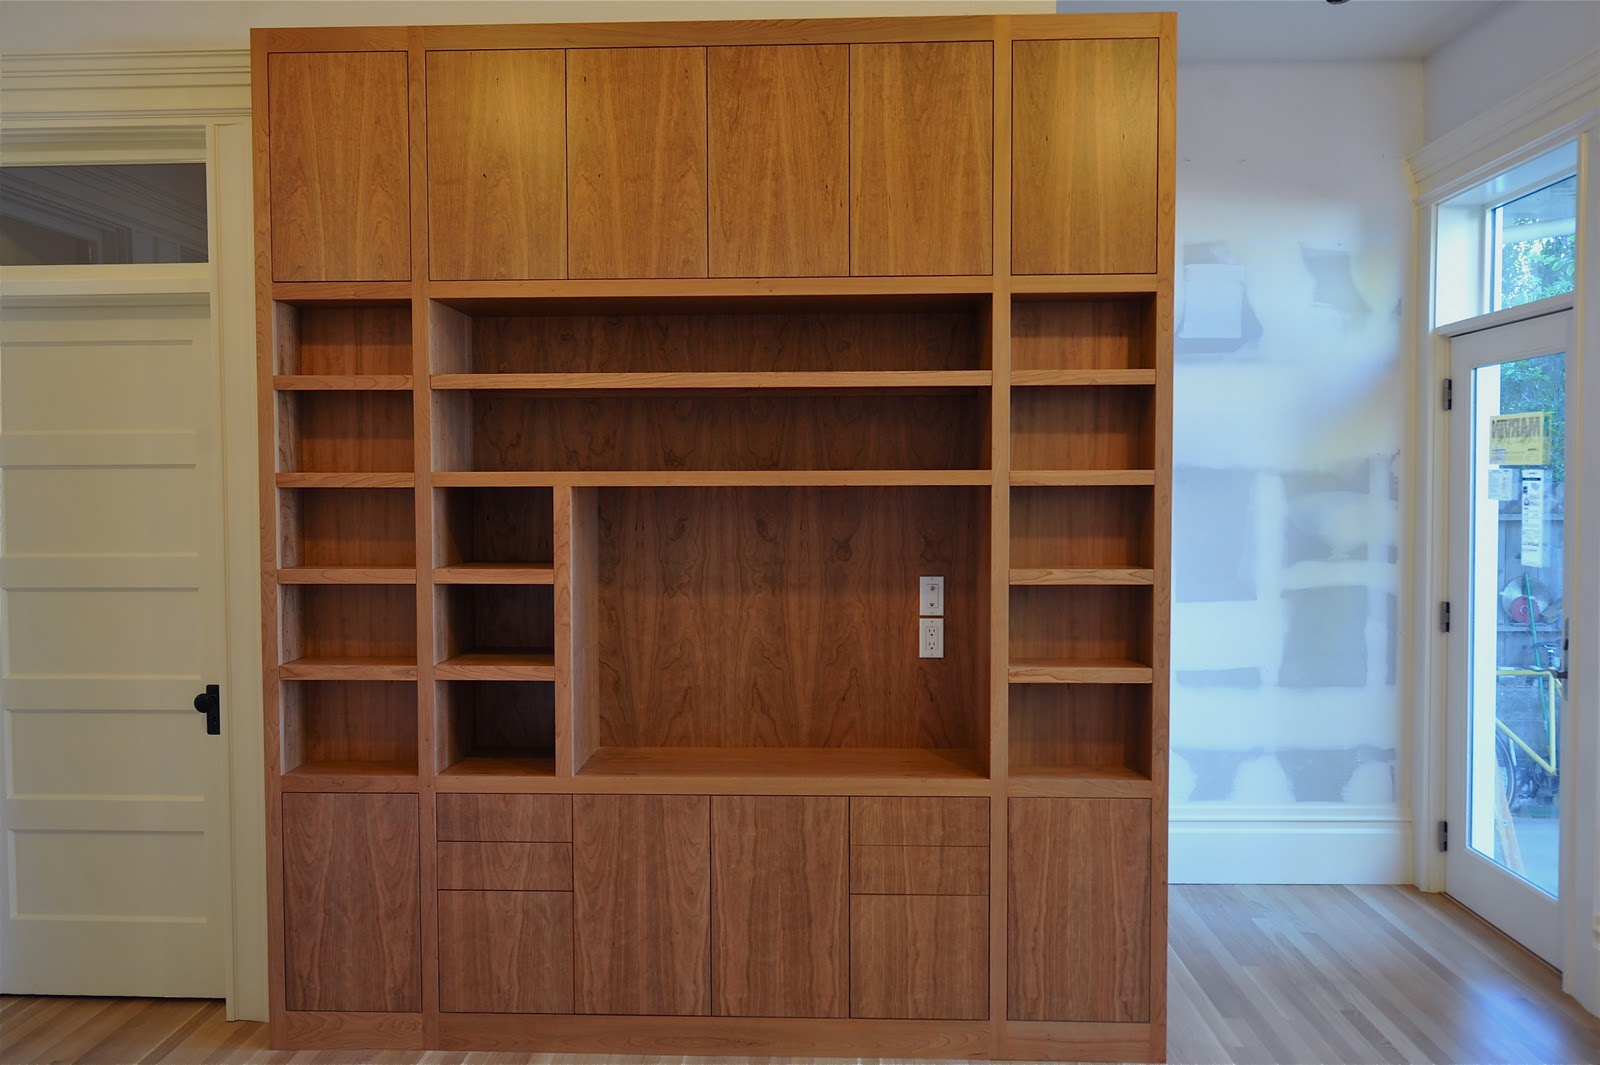 New home designs latest.: Modern homes wall cabinets ...